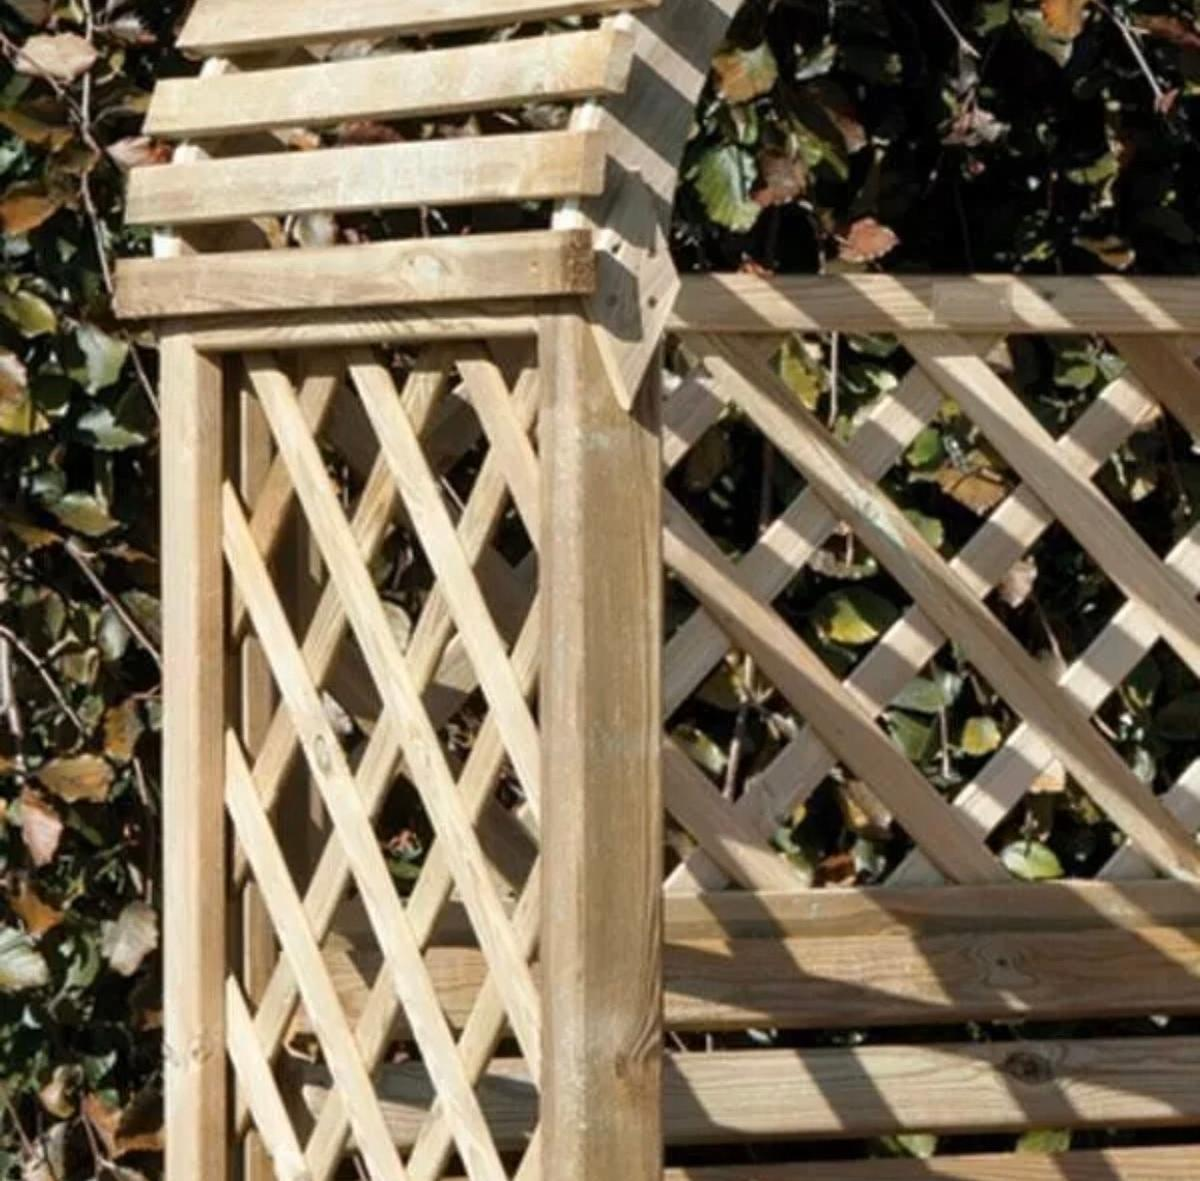 Rowlinson Jaipur Arbour Wooden Timber Garden Seat Bench Trellis Eastern Design